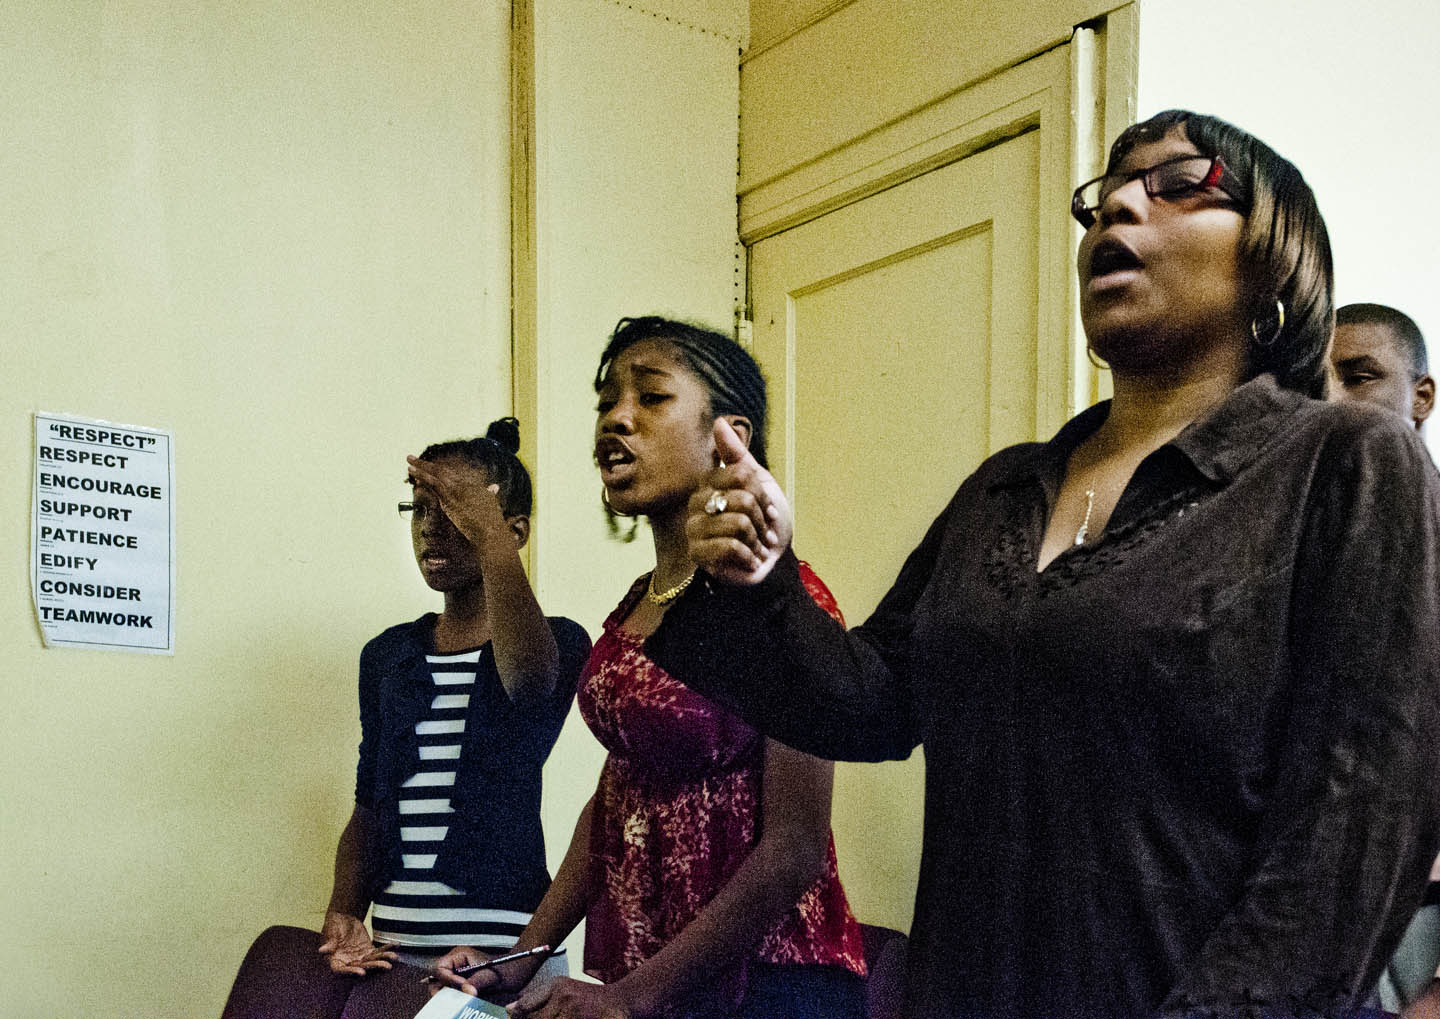 Singing about moral courage, United Baptist Church, Brooklyn. Photo: Tony Carnes/A Journey through NYC religions